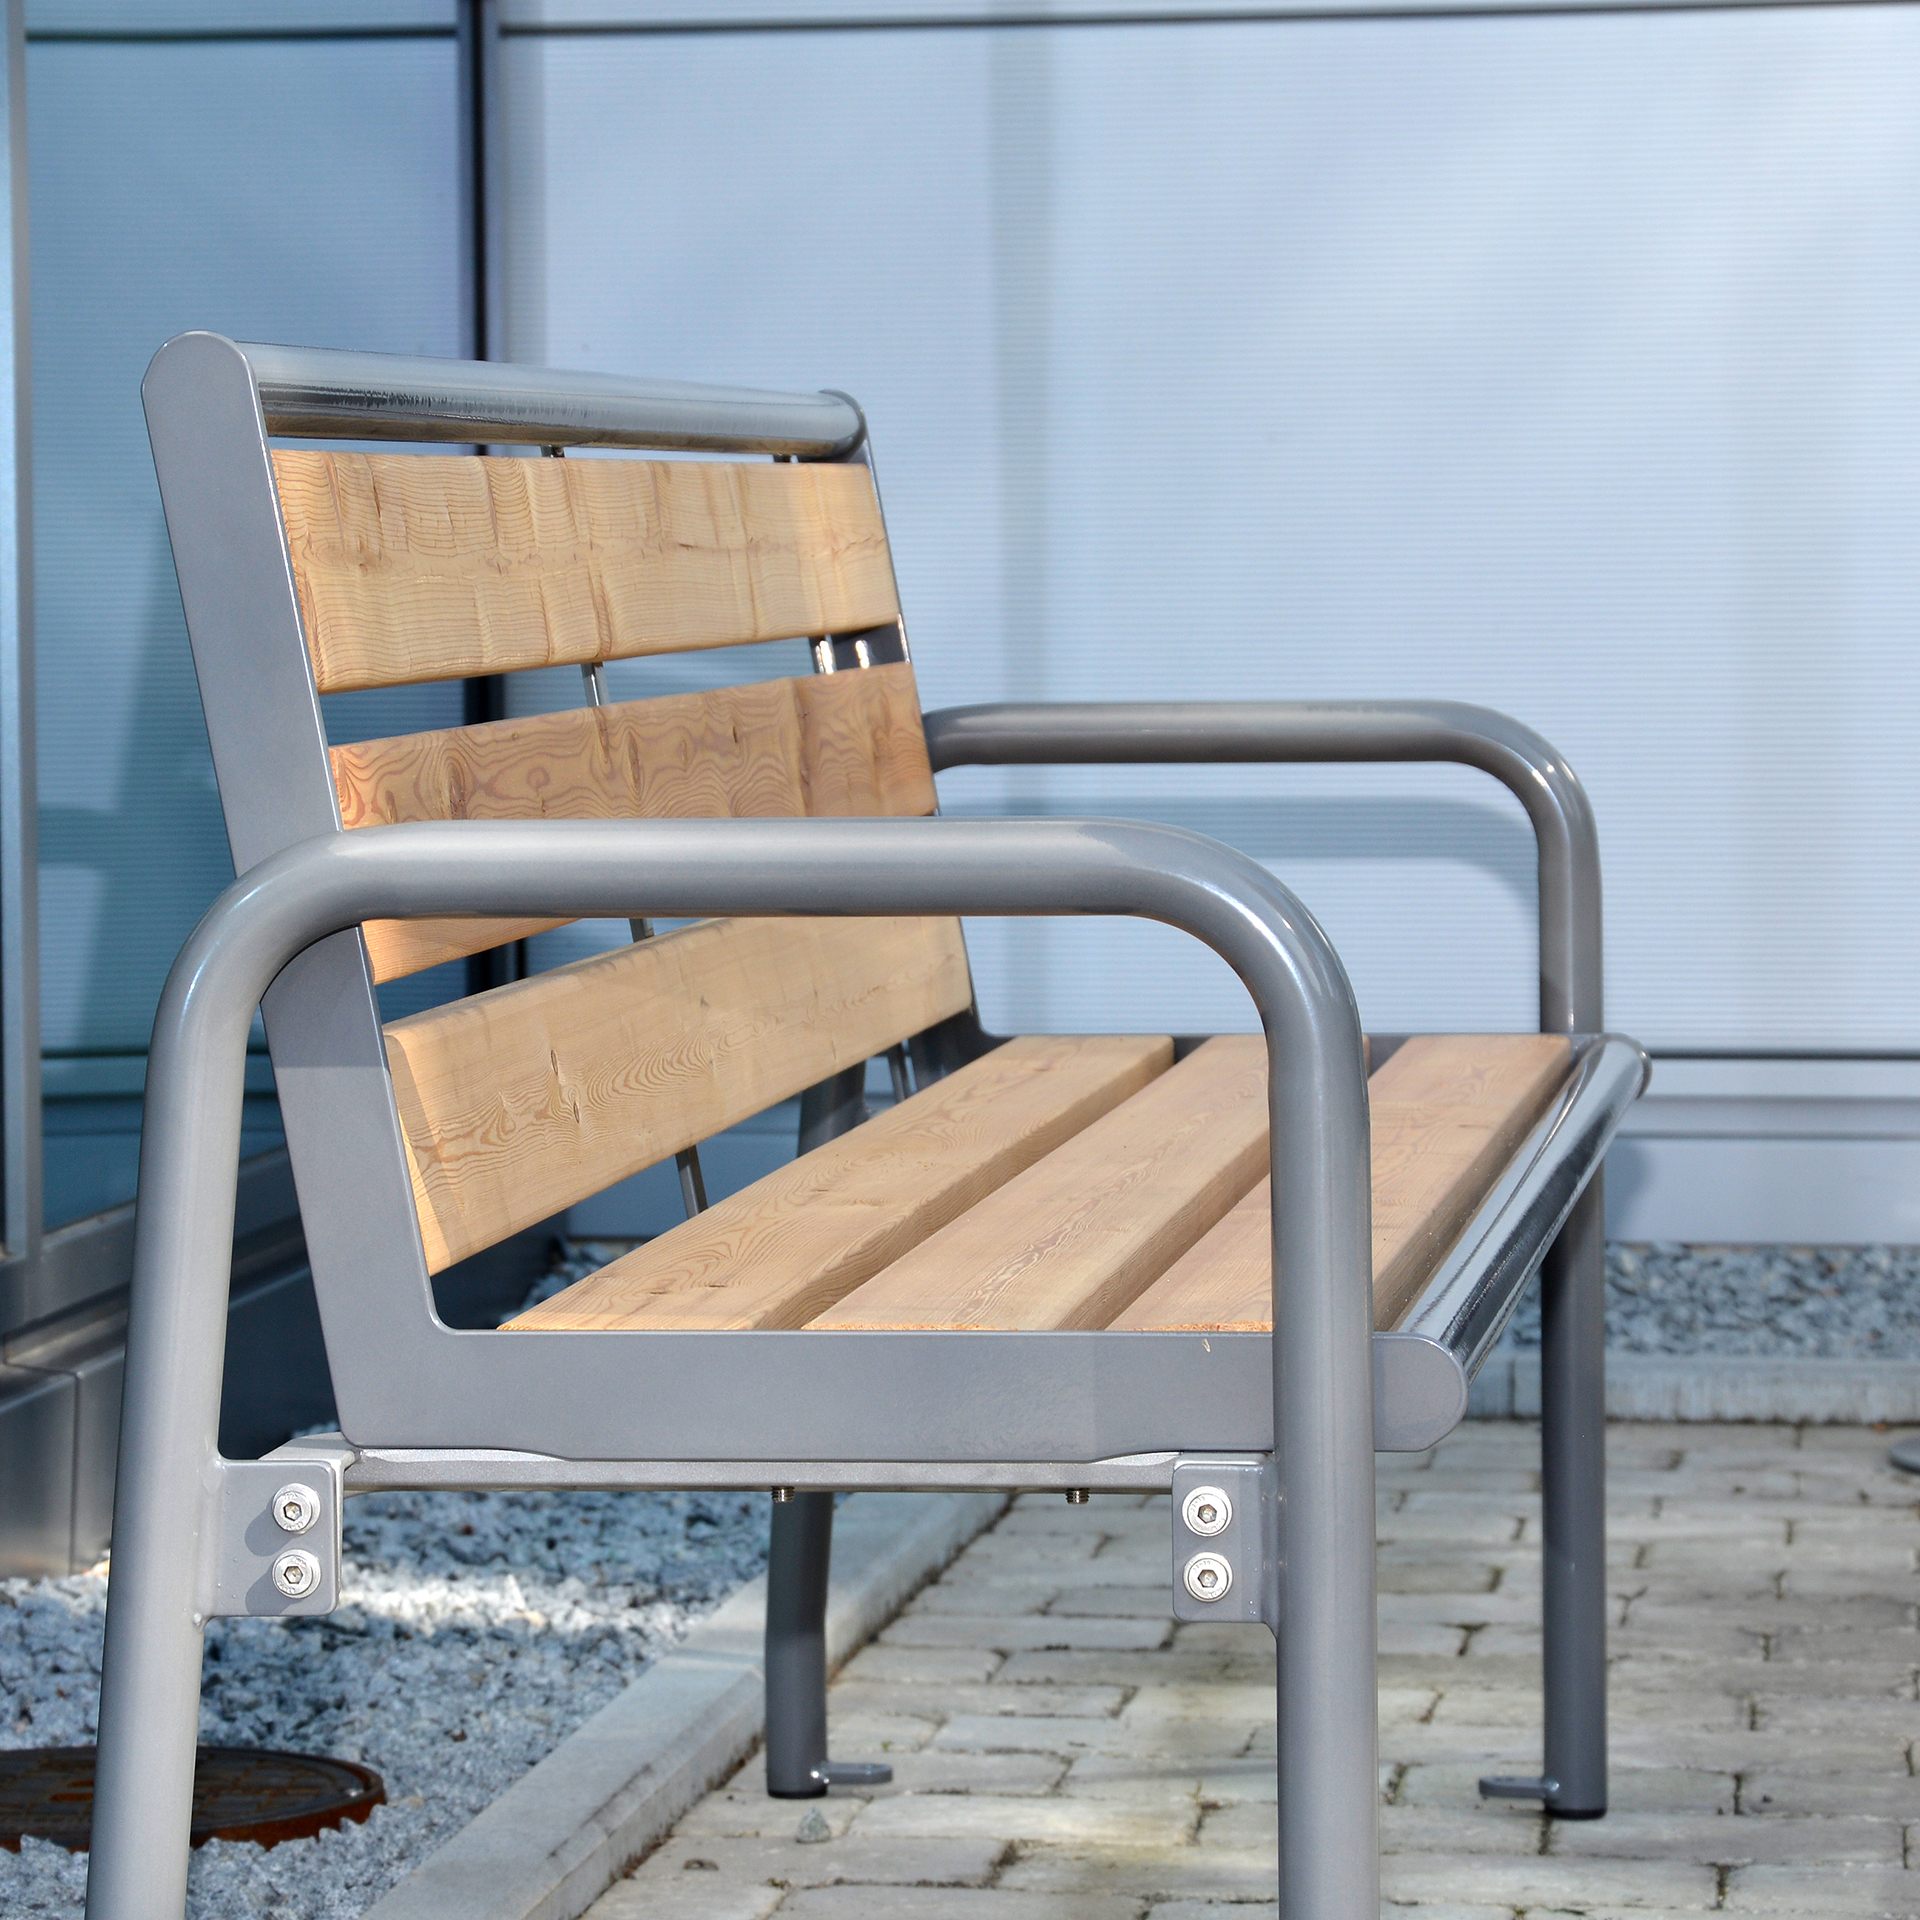 Charisma Bench, wooden and metal bench